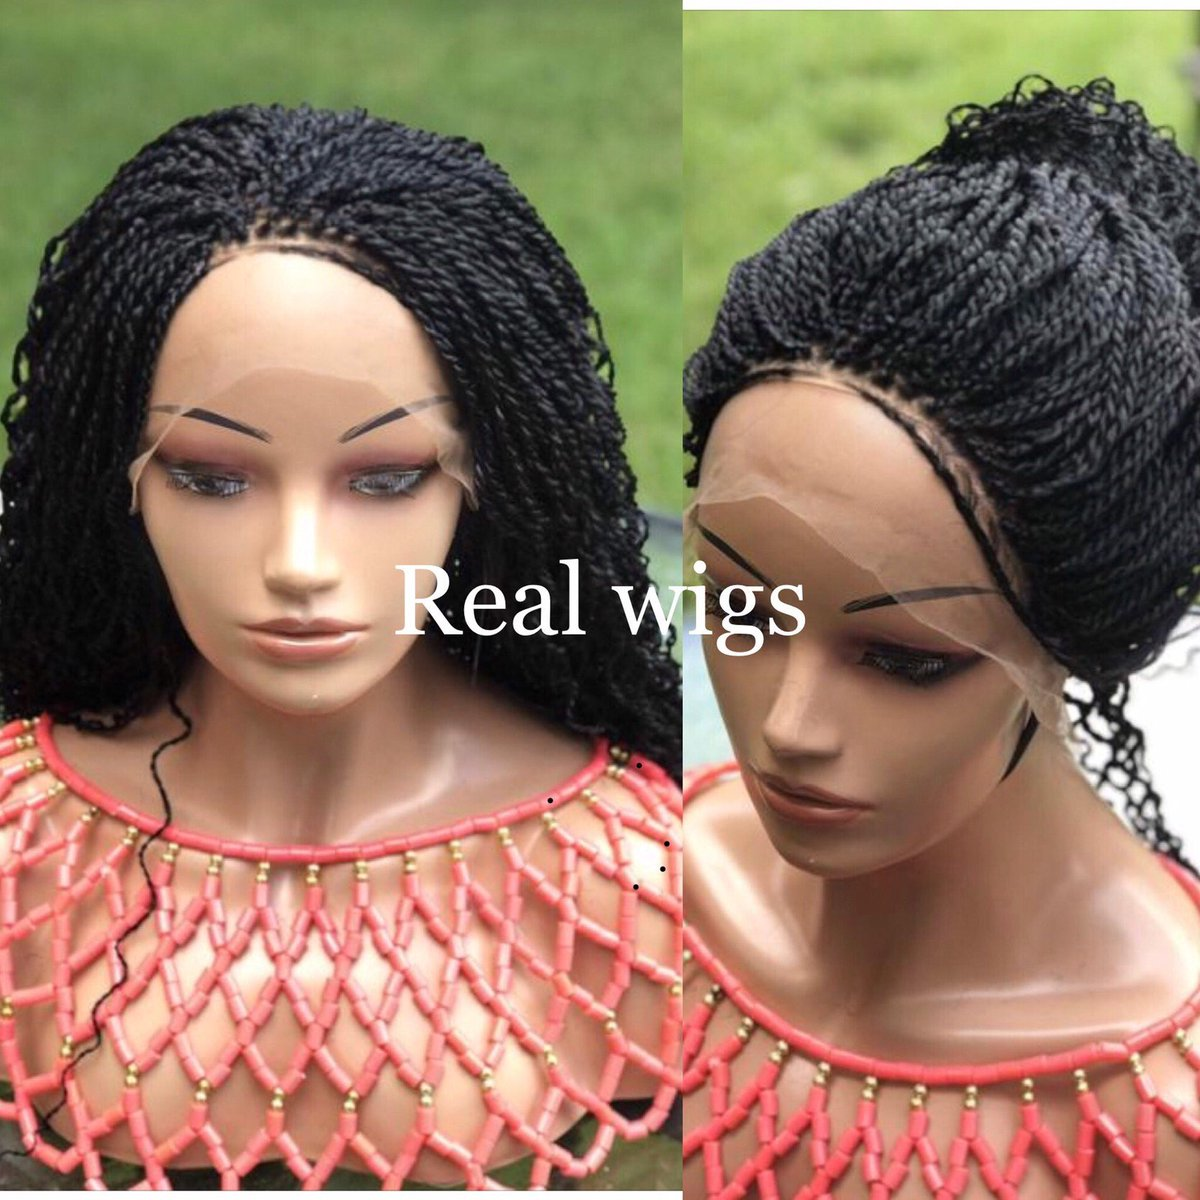 Excited to share this item from my #etsy shop: Braided wig water wave.The length in the picture is 22inches. #black #gluelessfrontal #synthetic #madetoorder #curlywig #adjustableband #tanglefree #braidedwig #lacwig